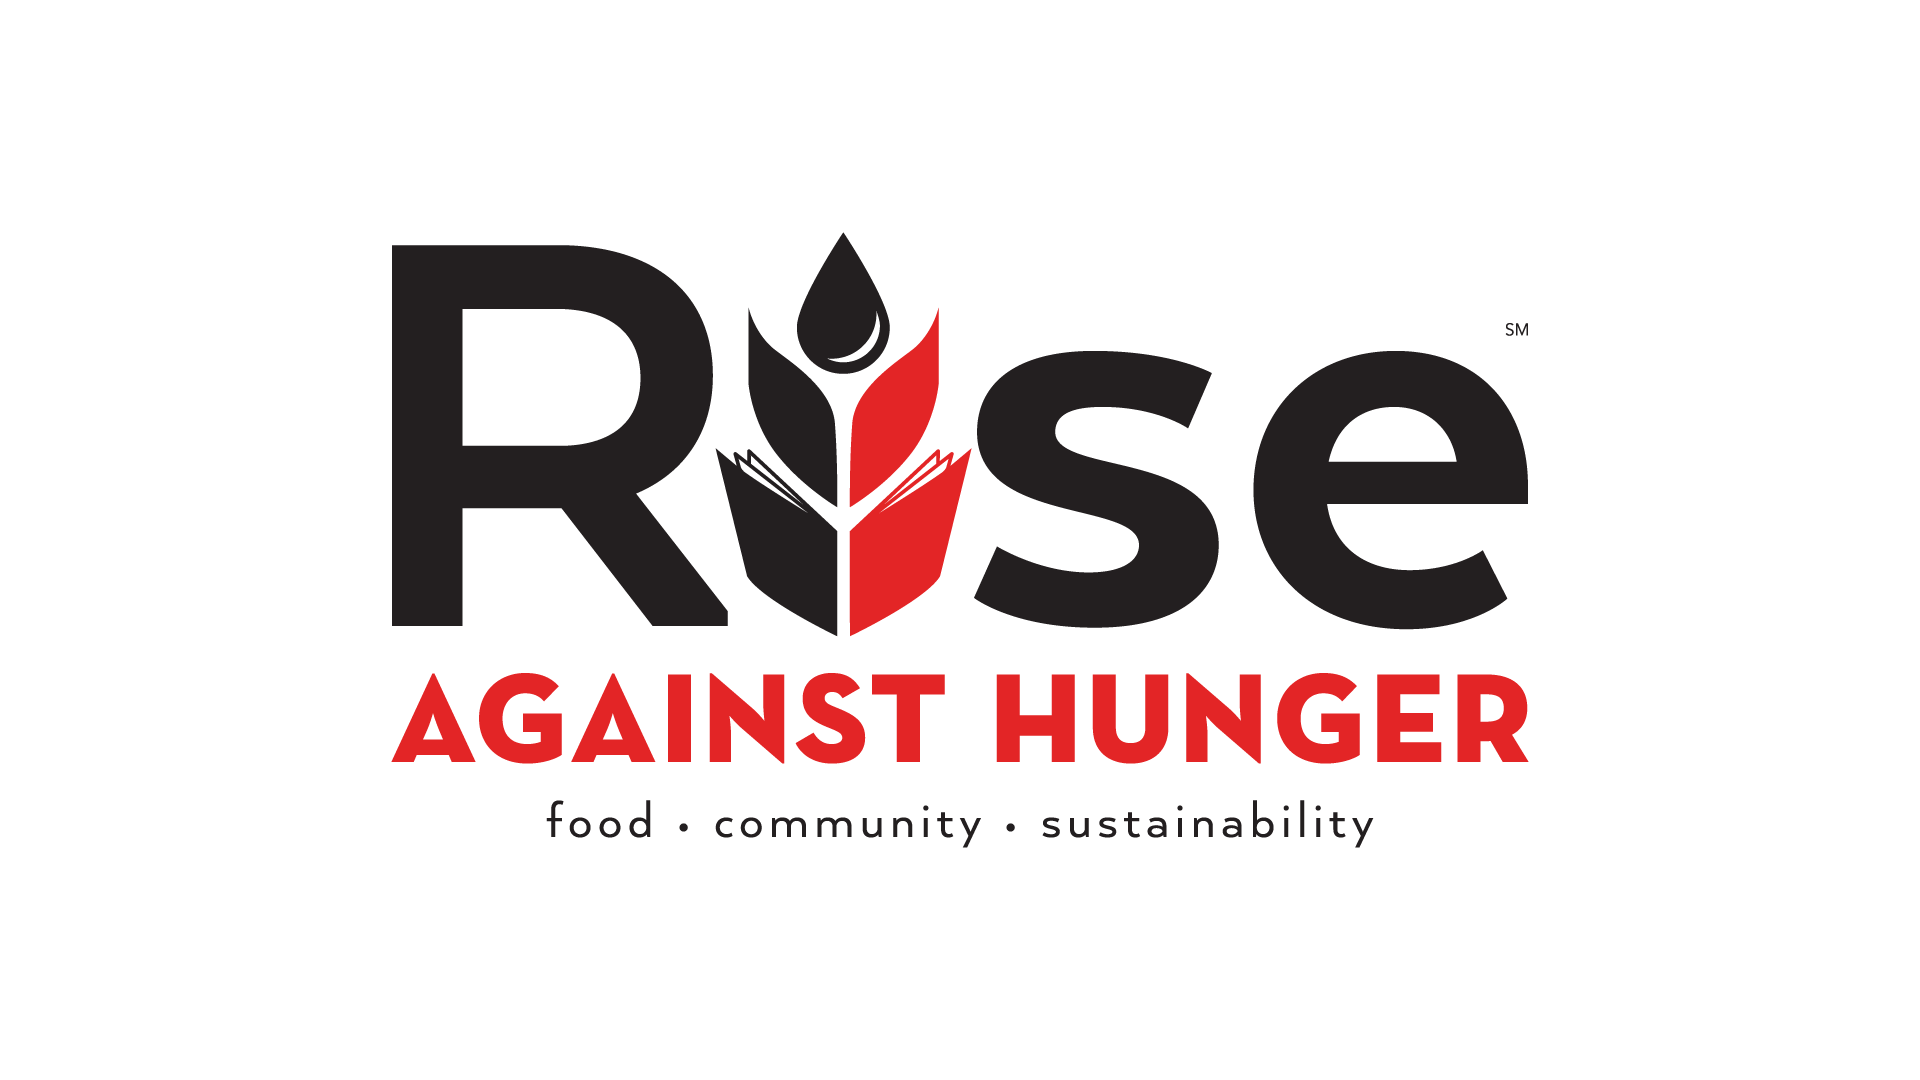 Rise Against Hunger 19 by 10.png